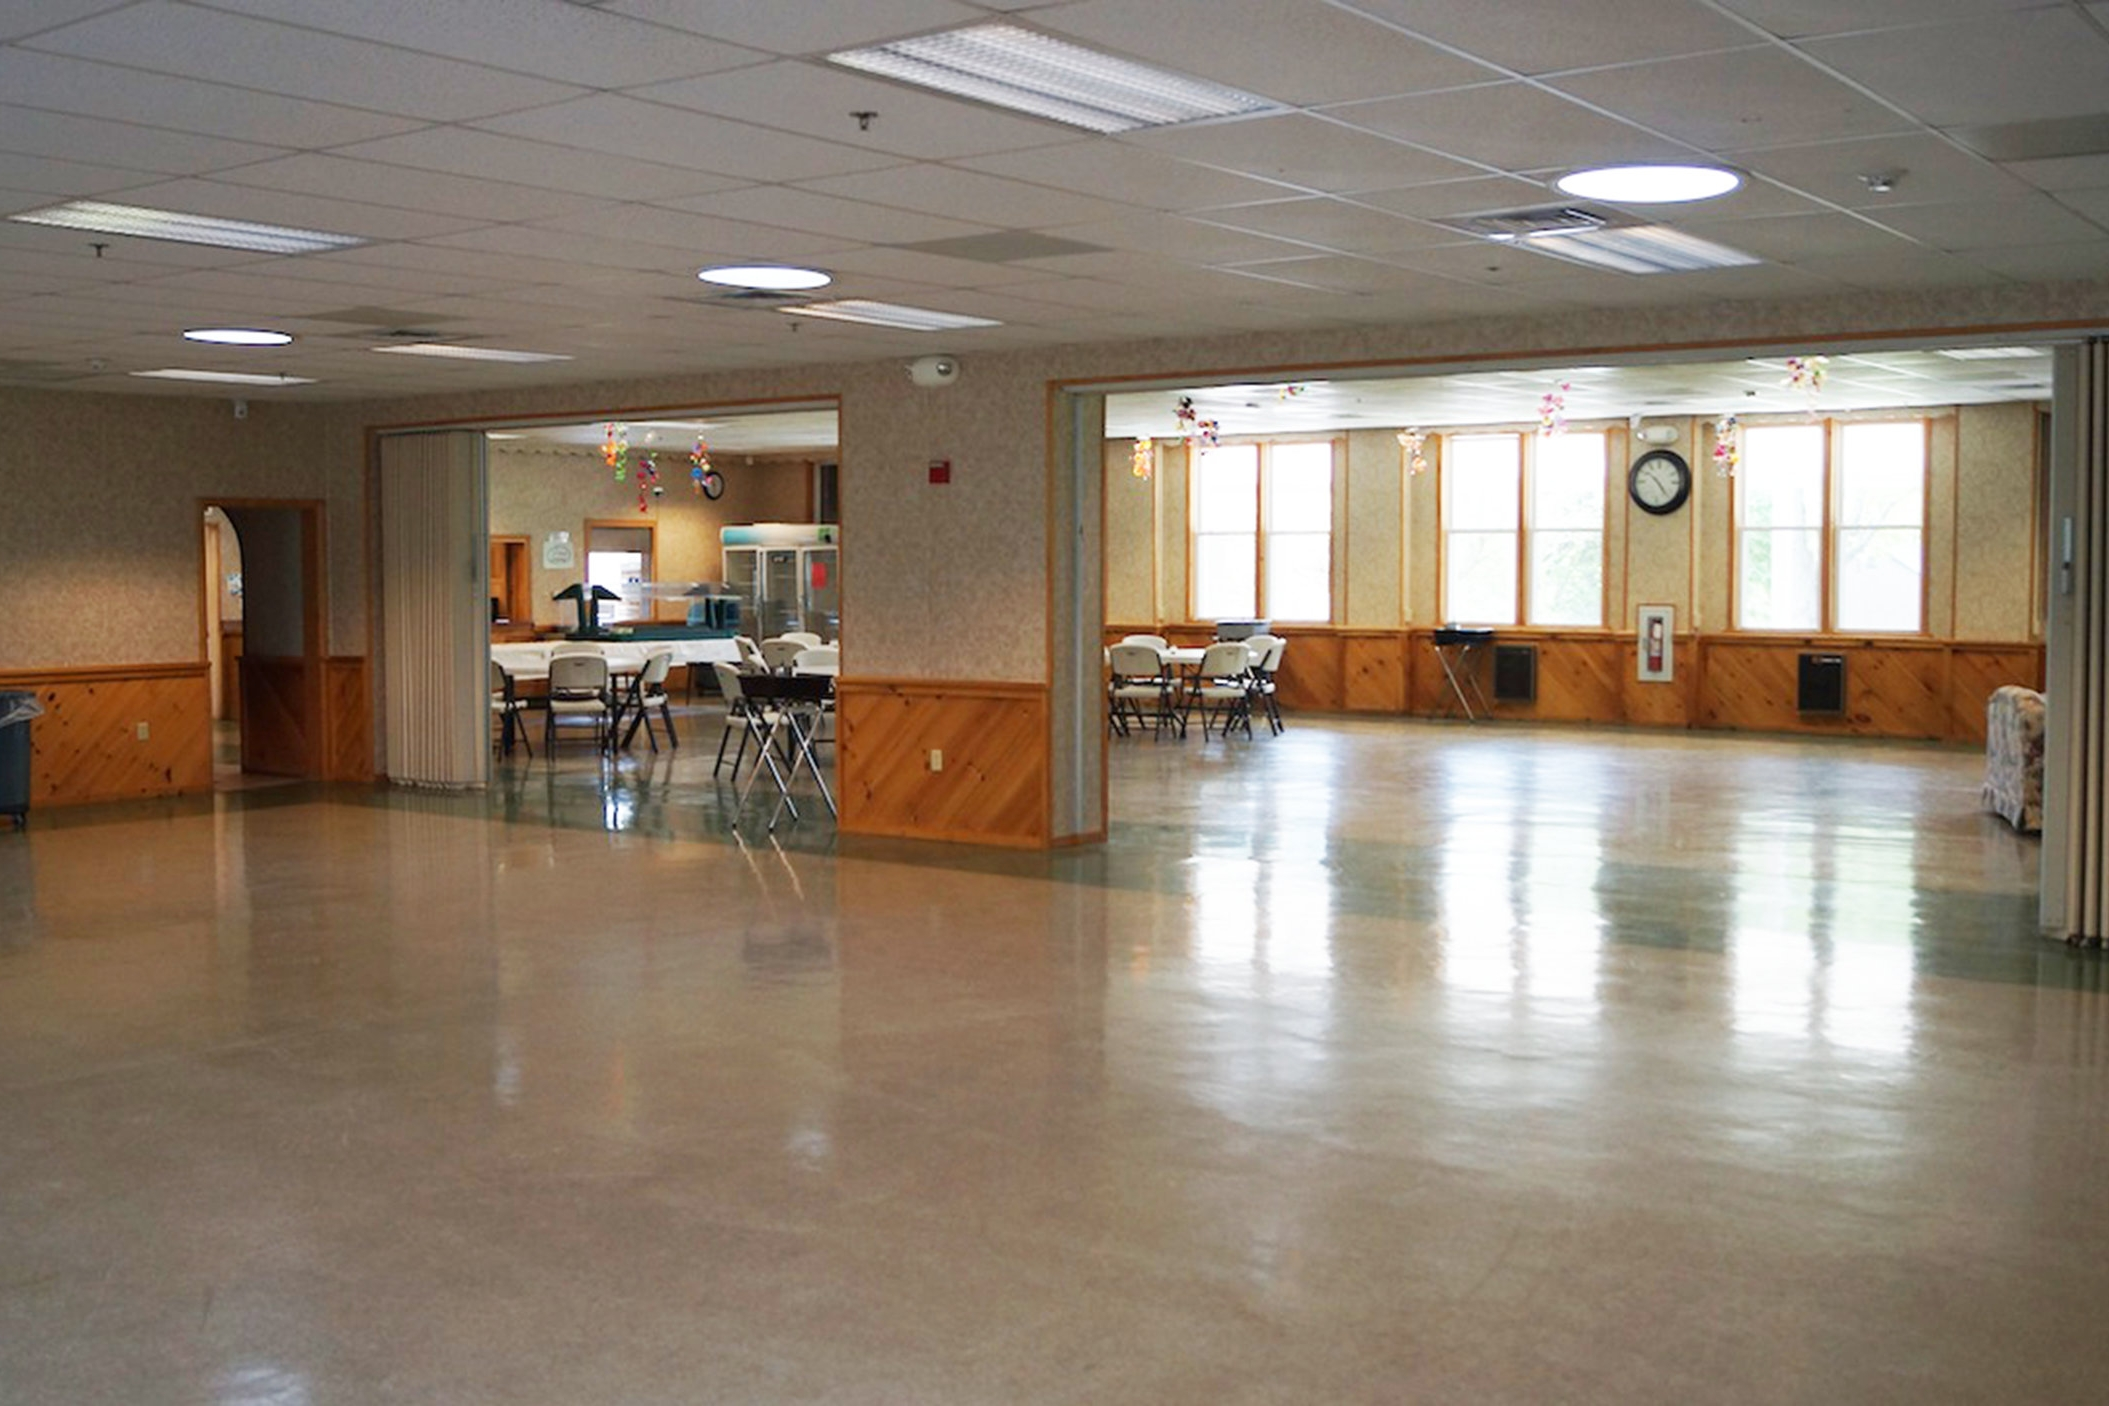 The Dining Hall at Hartman Center provides a clean and spacious location to have camp meals.